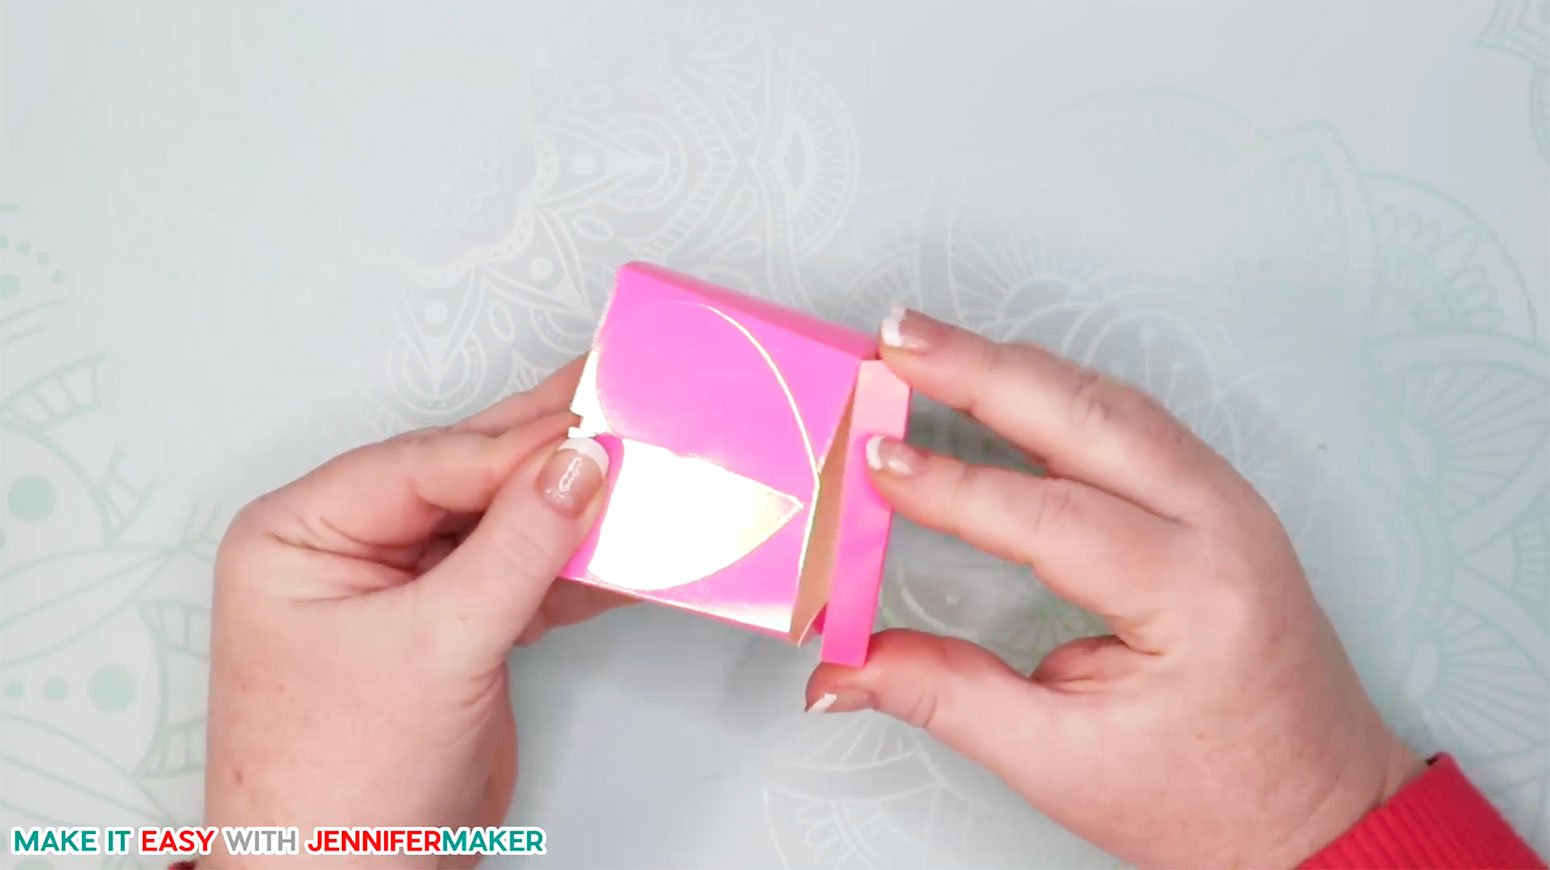 Tucking the bottom tab into the heart box